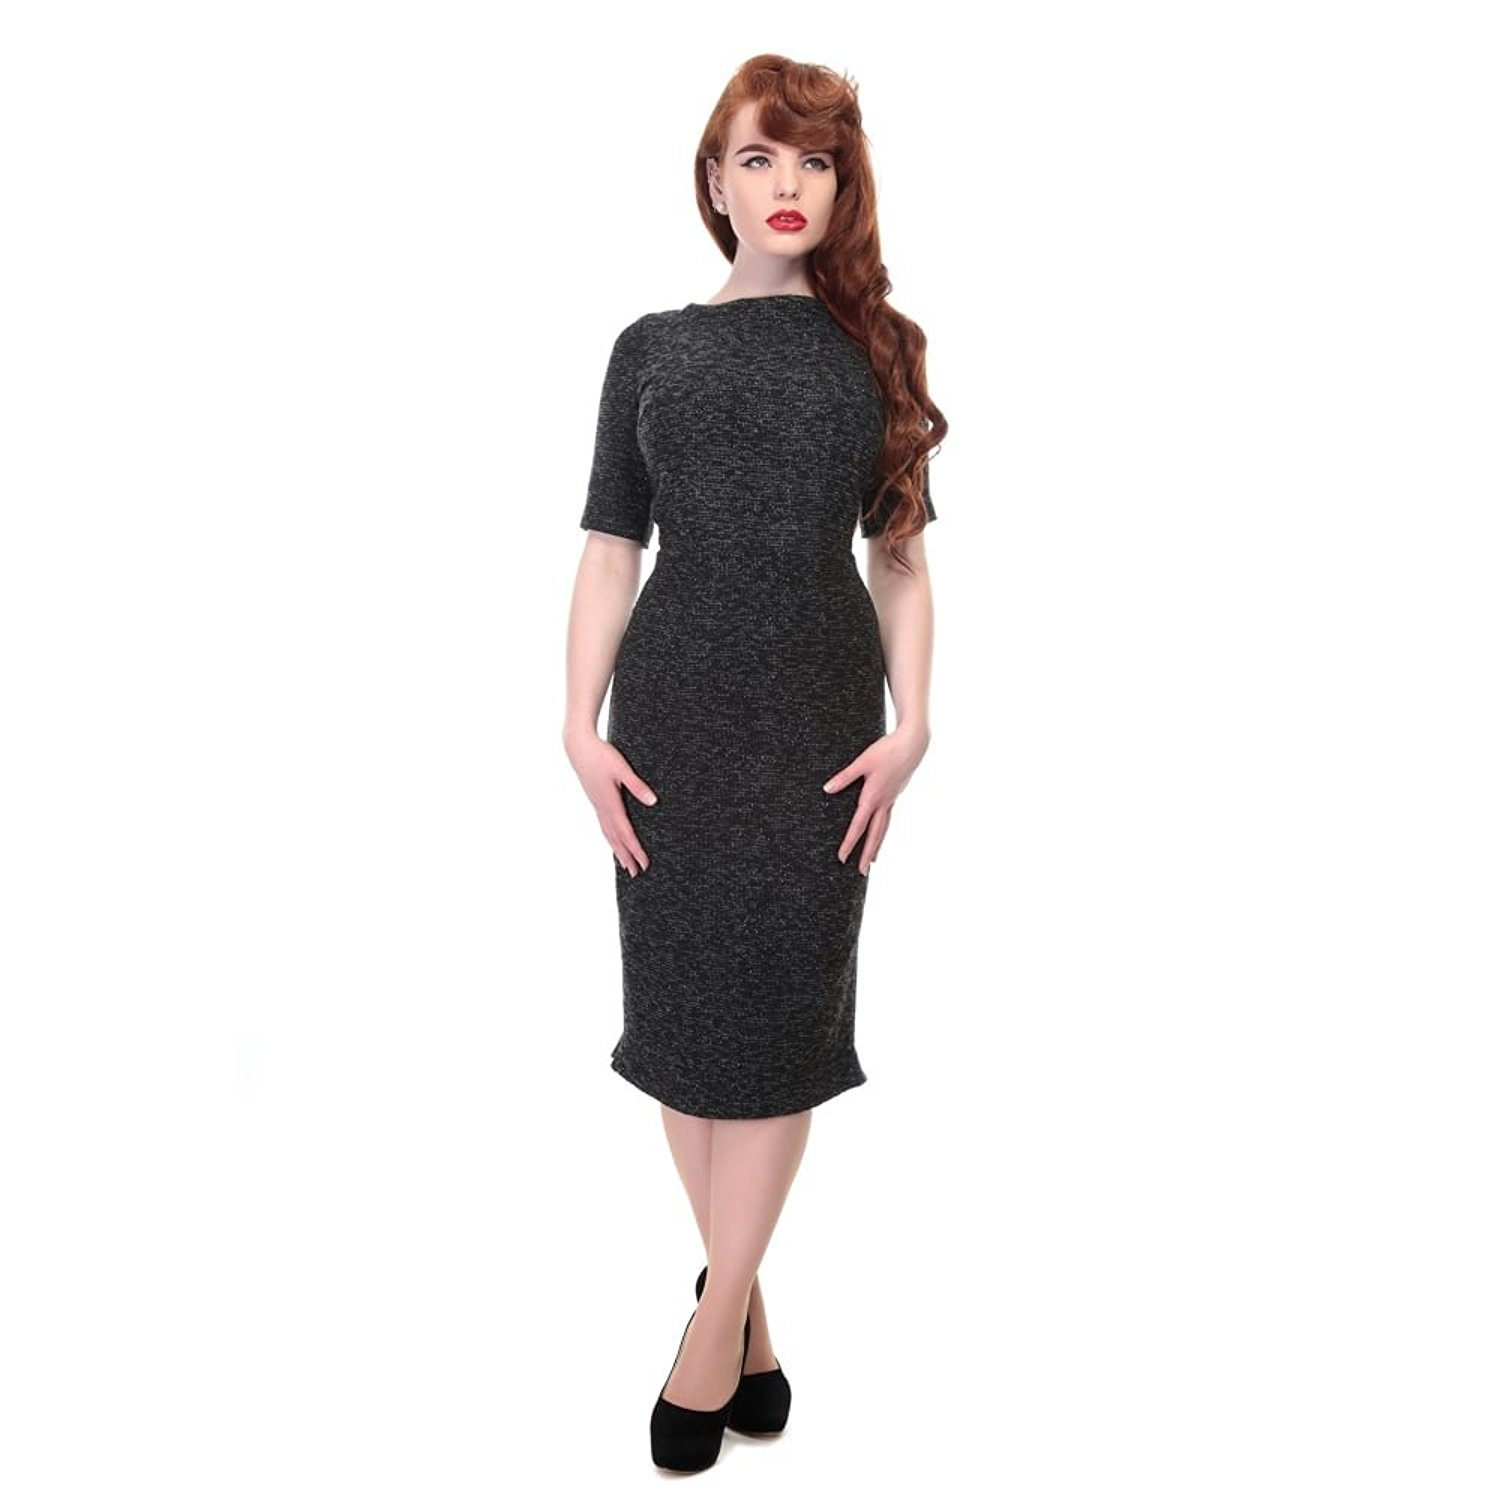 Shop from the world's largest selection and best deals for Tweed Women's Dresses. Shop with confidence on eBay!